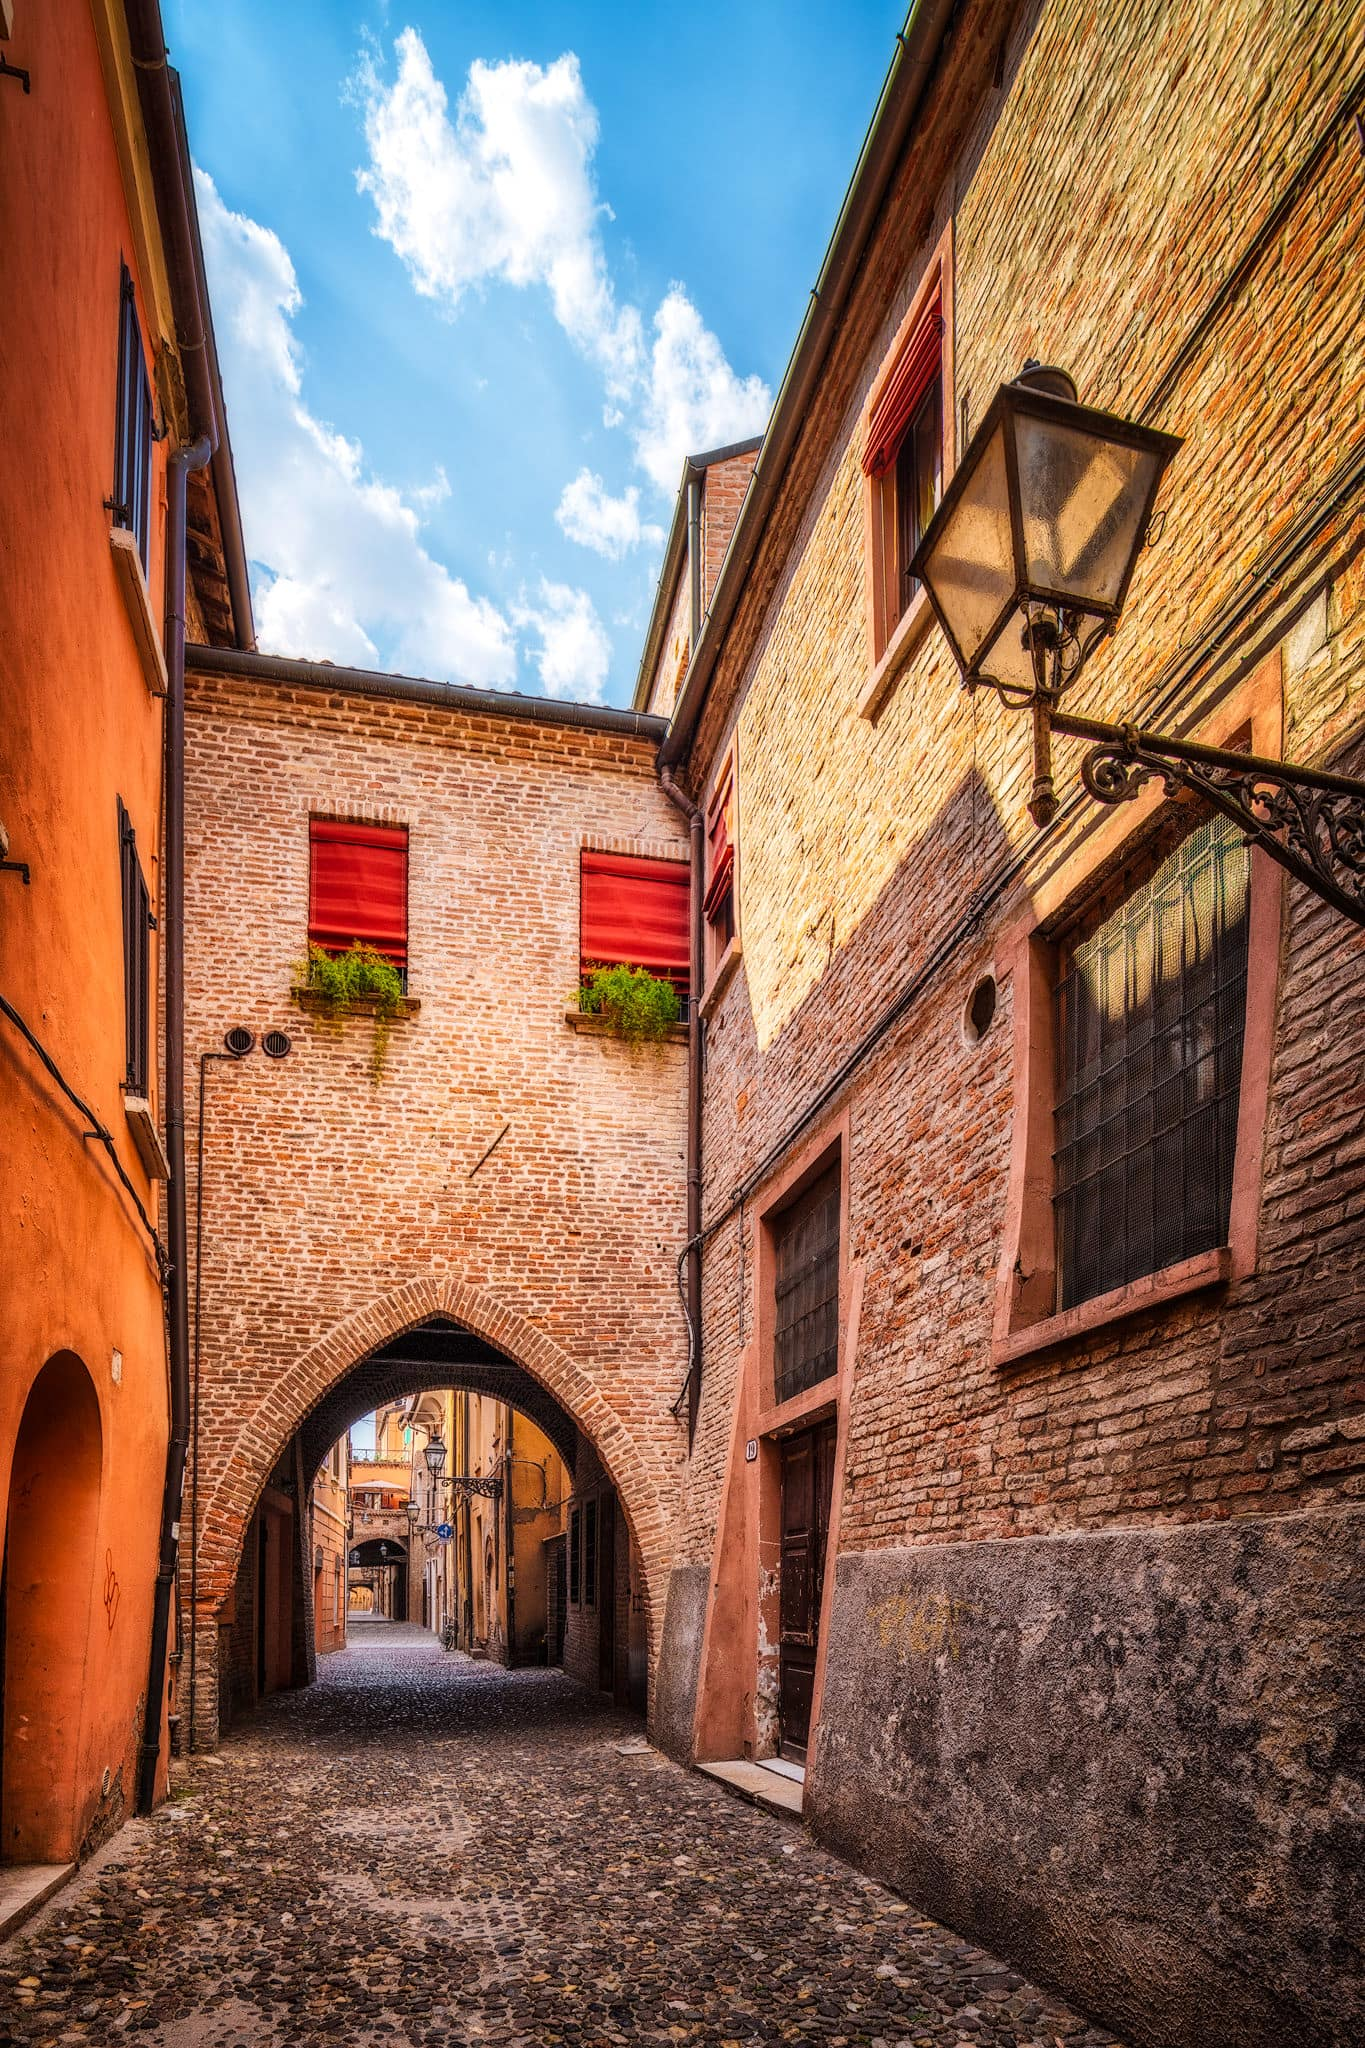 The medieval streets of Ferrara